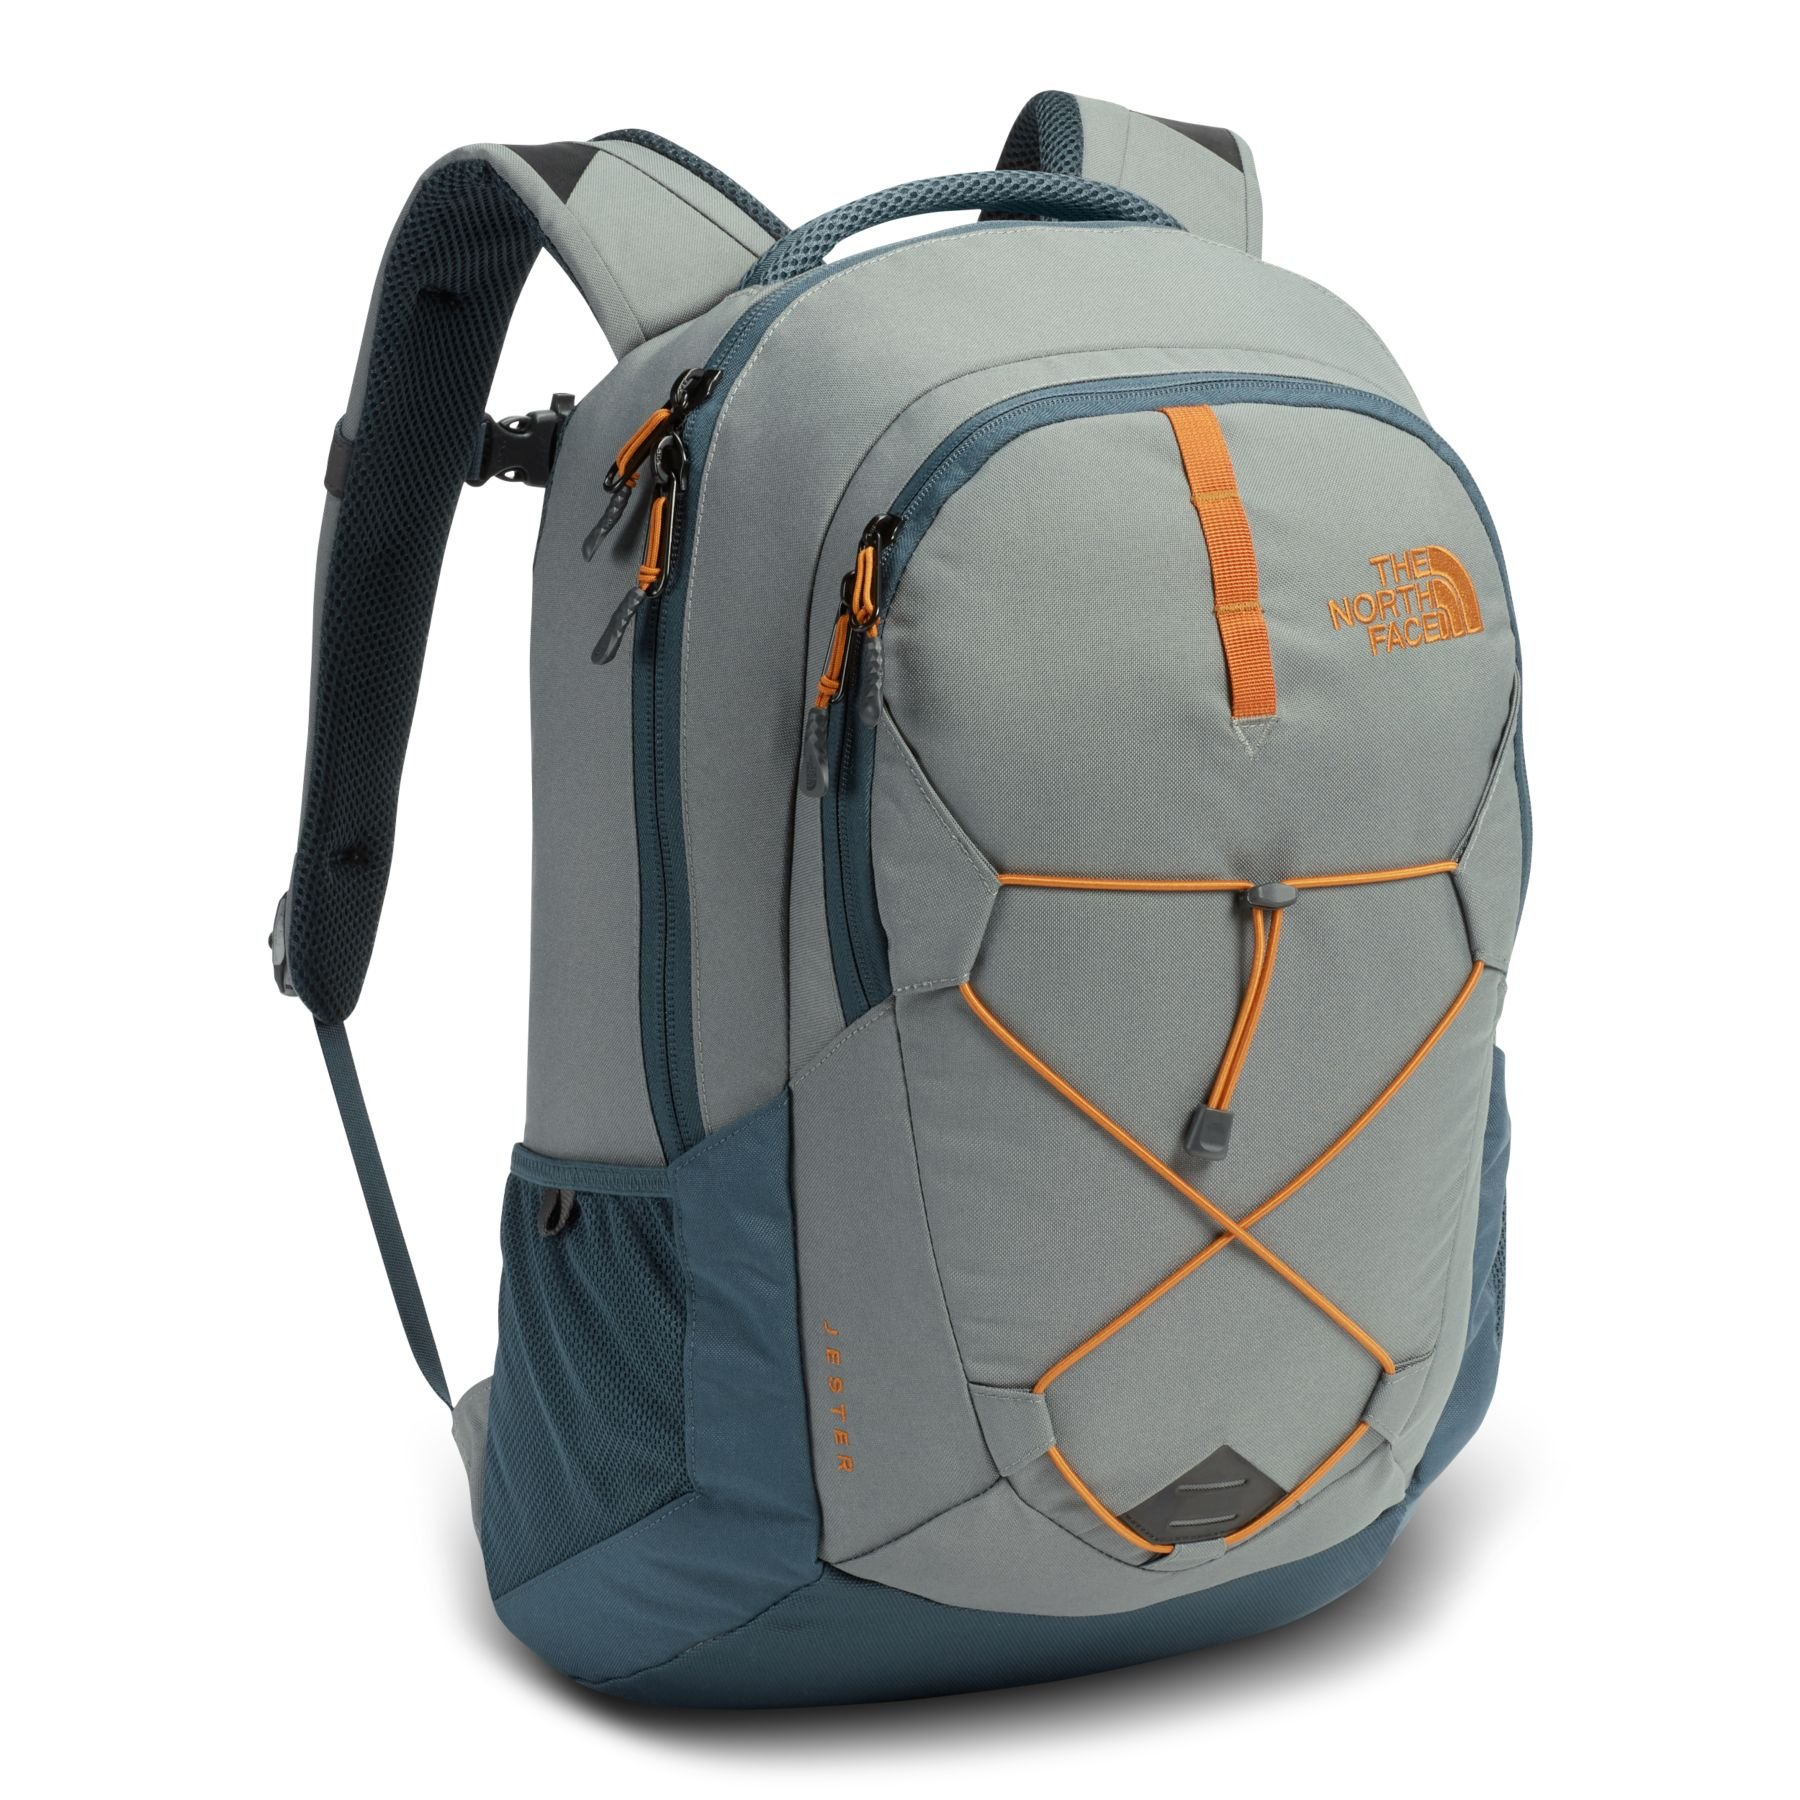 The North Face Jester Backpack - Sedona Sage Grey & Conquer Blue - OS (Past Season)